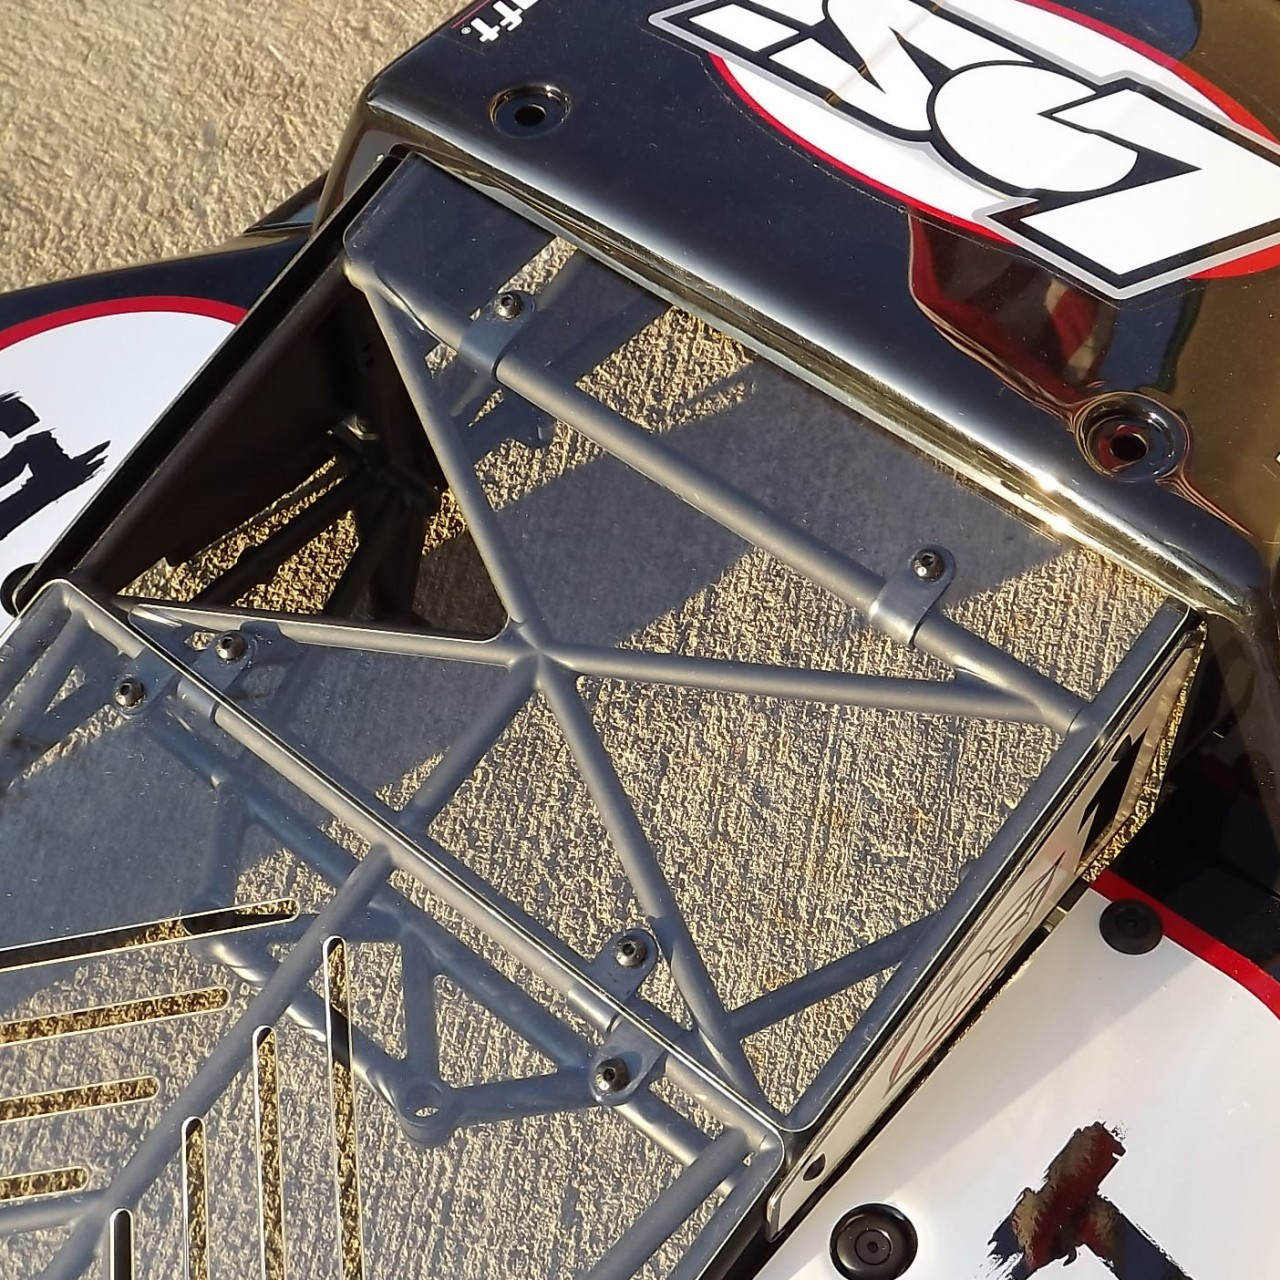 CNC laser cut for a precise fit onto the stock 5ive-T rollcage using simple installation.